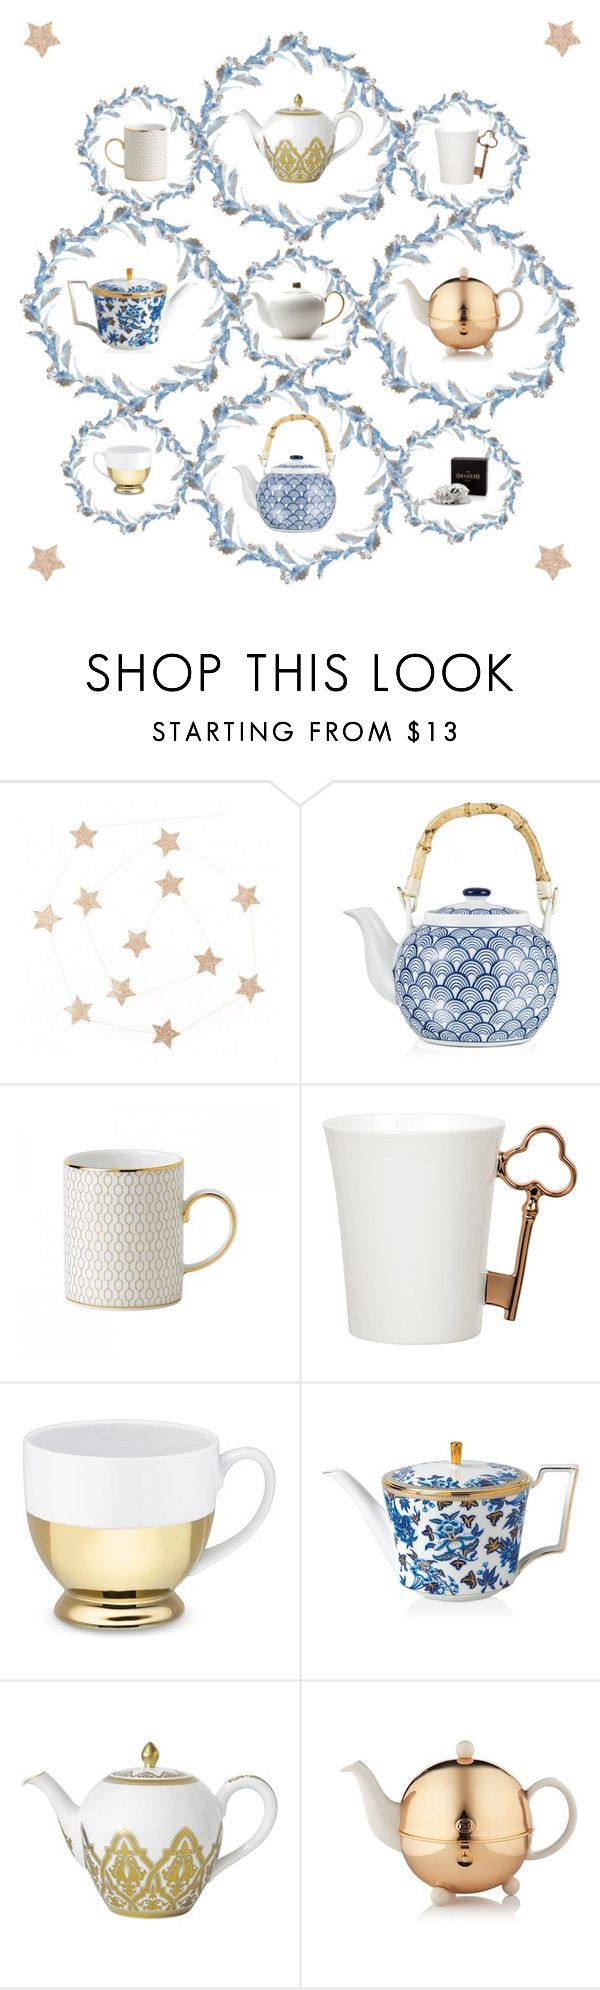 1000+ images about TWG Tea & Accessories on Pinterest.